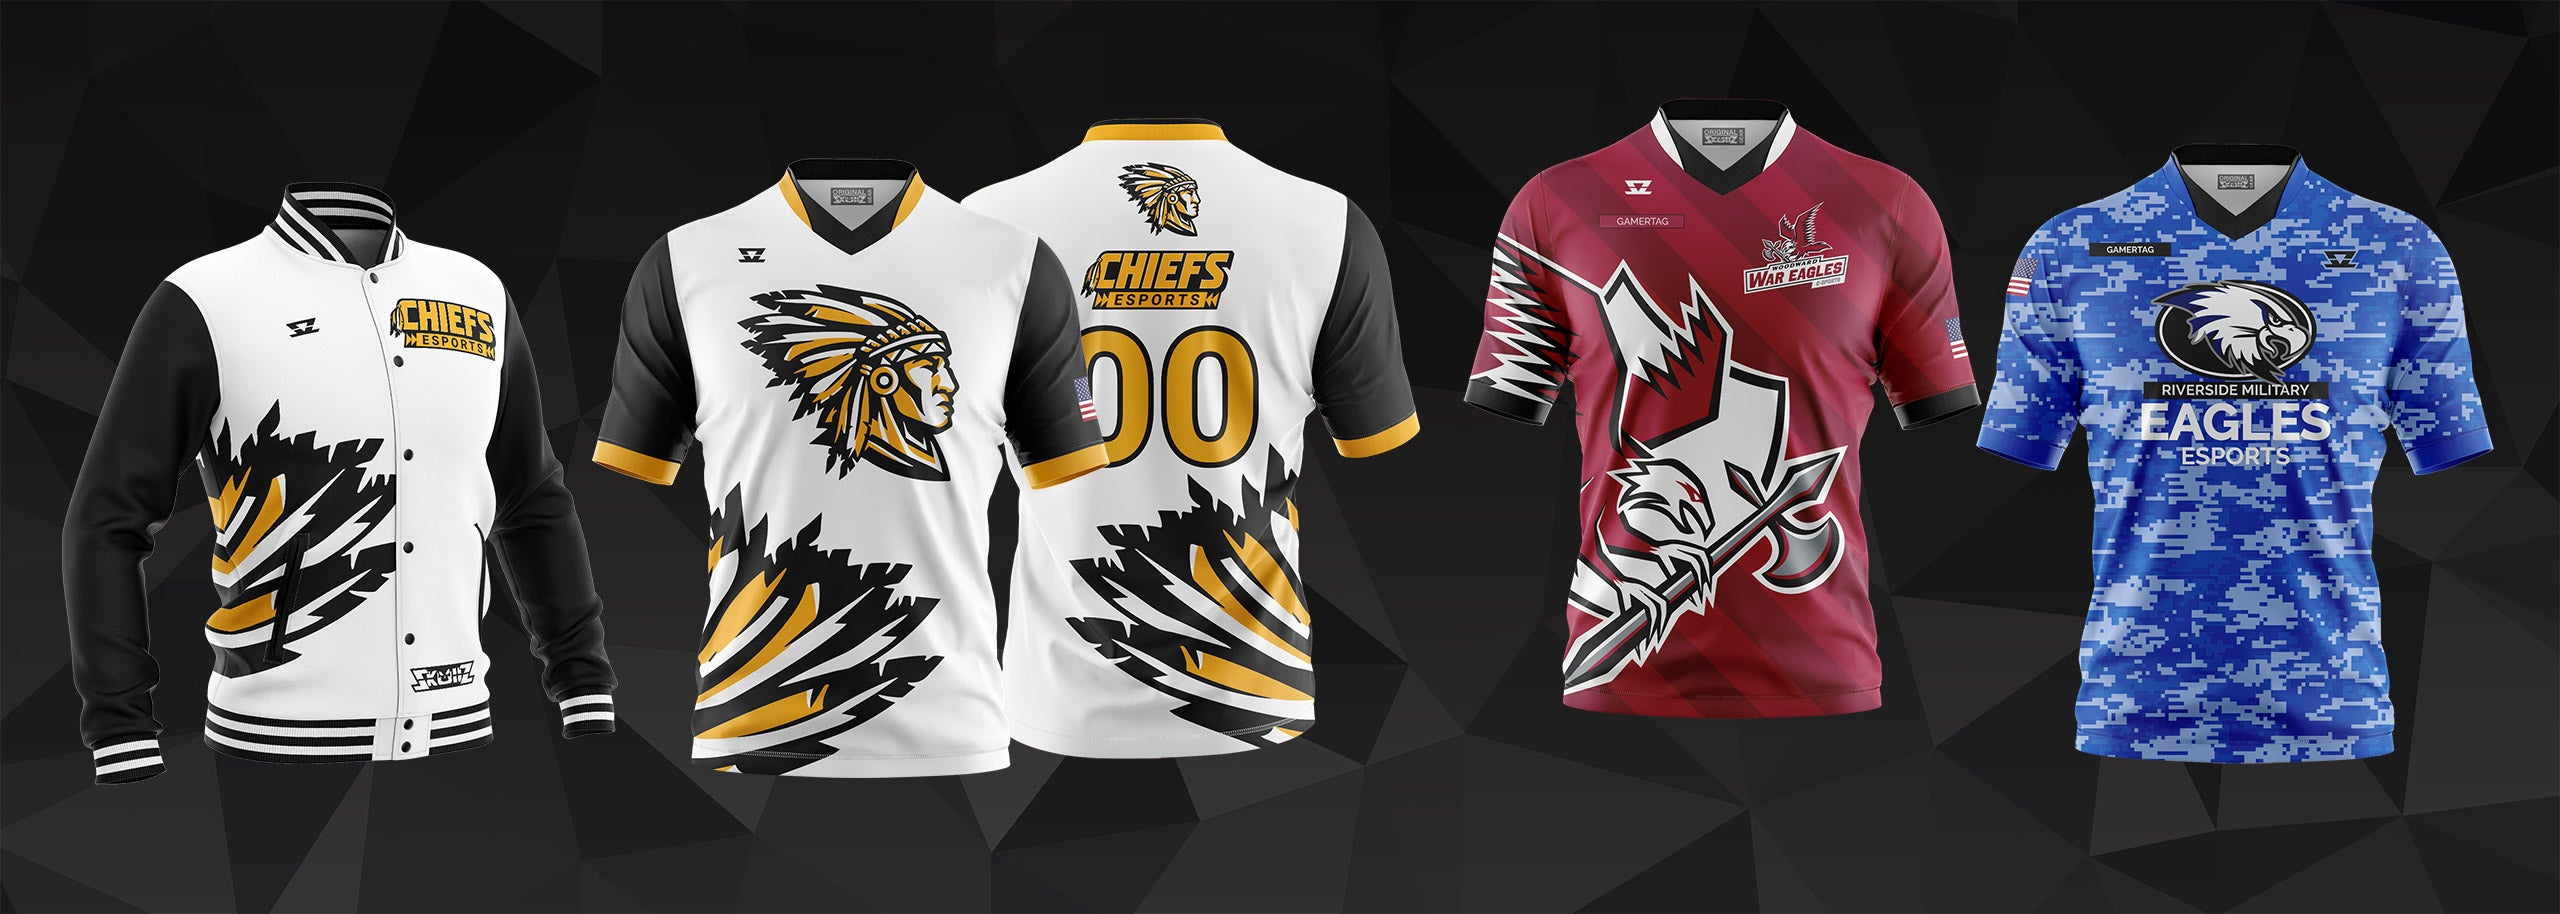 High School Esports Jerseys by Skullz